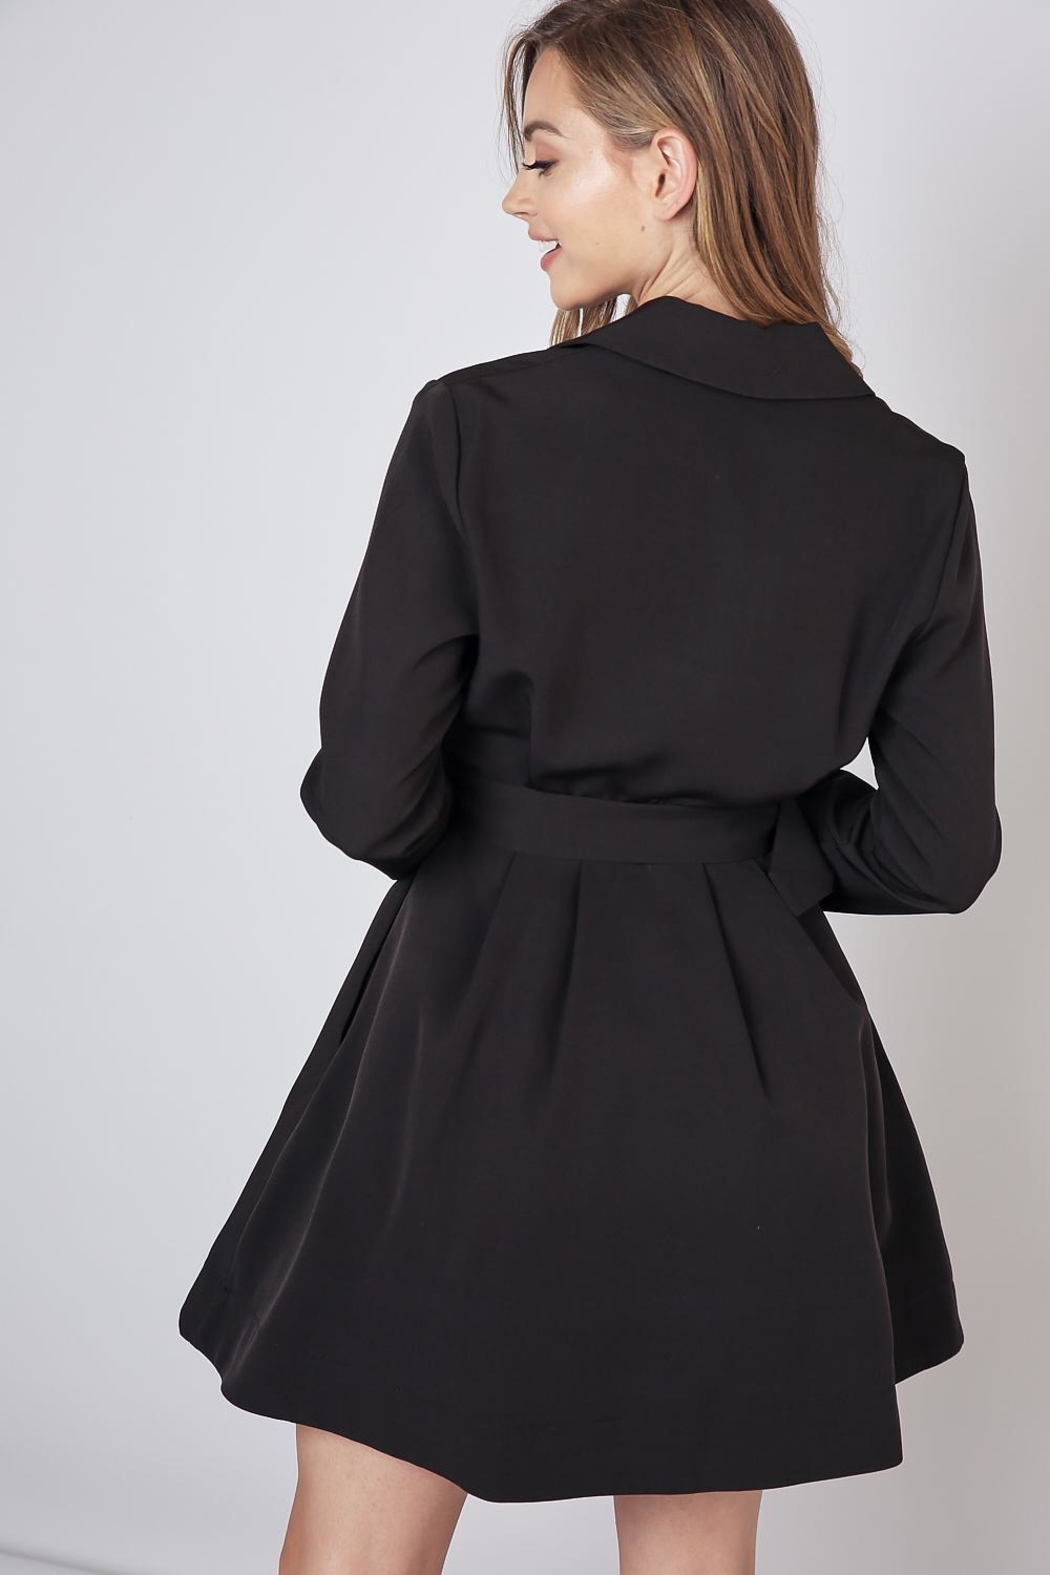 Do & Be Lapel Collar Dress - Side Cropped Image